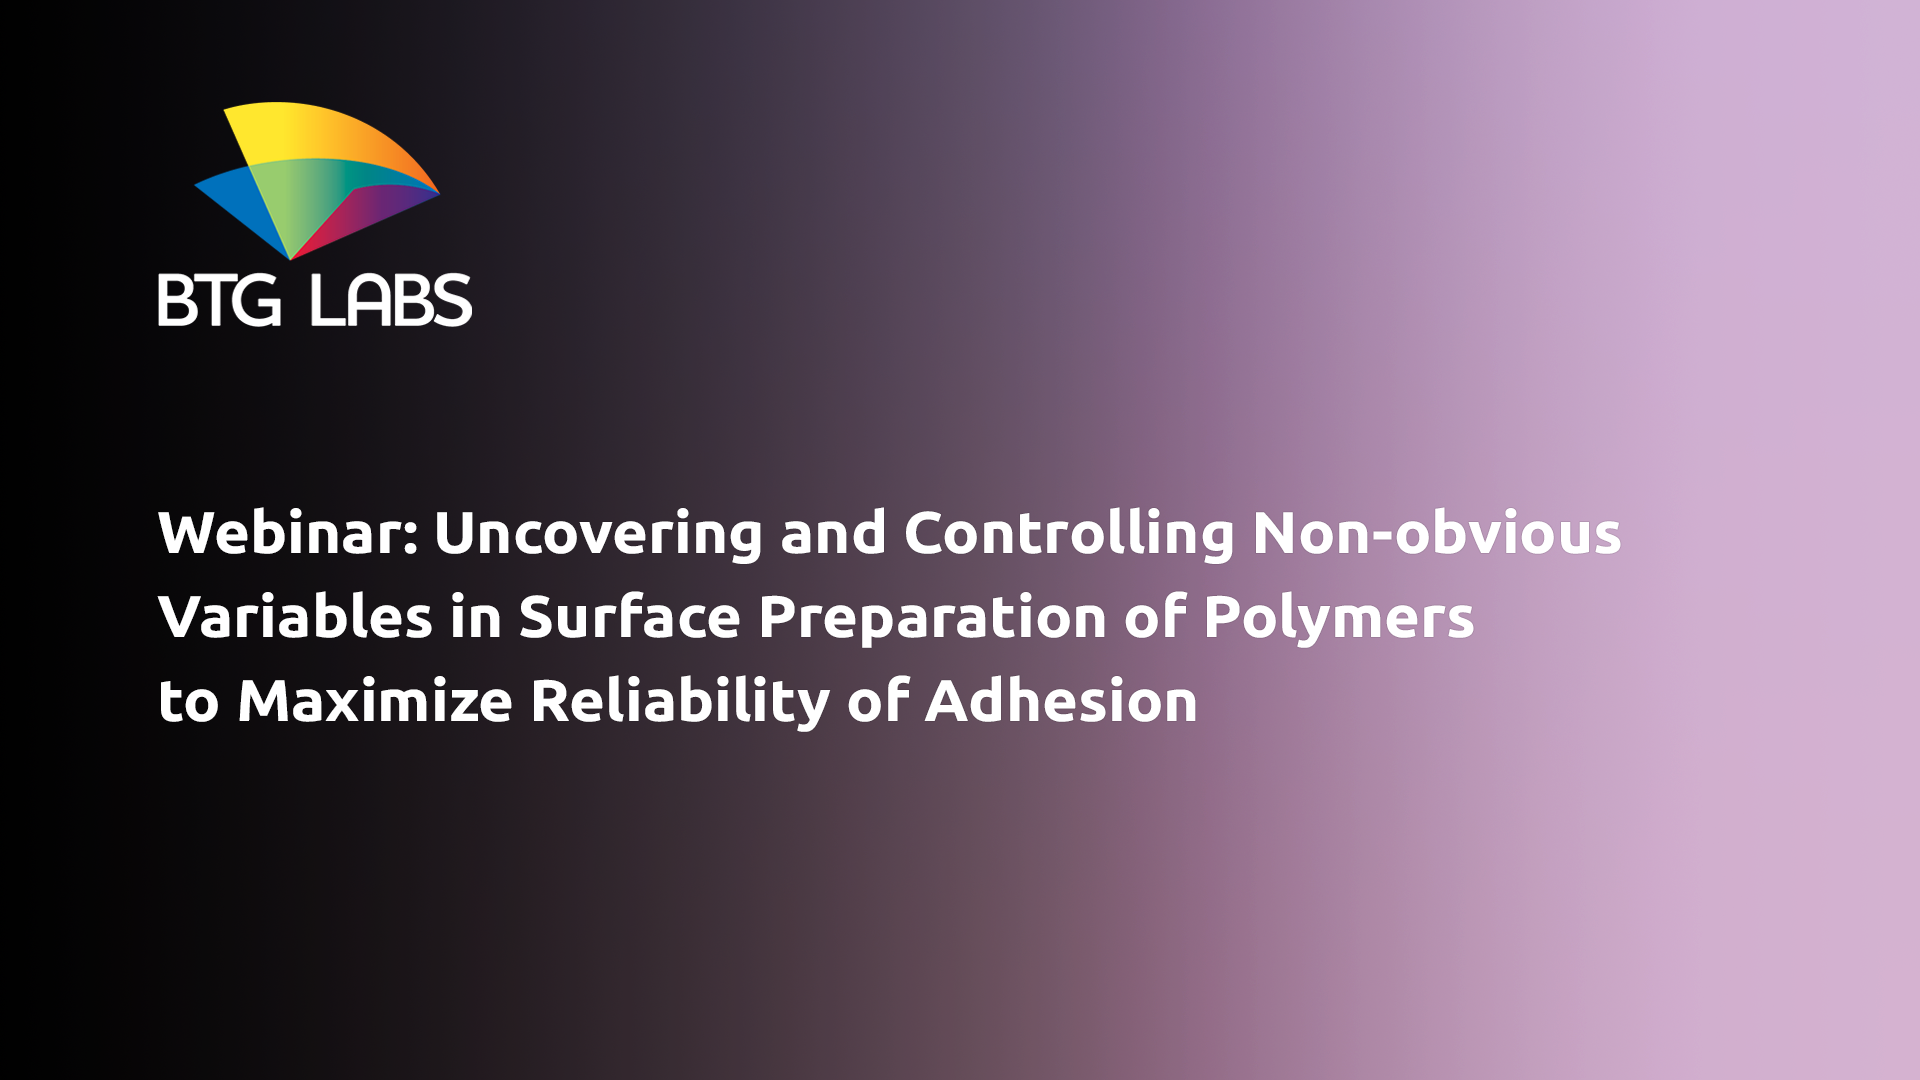 uncovering-and-controlling-non-obvious-variables-in-surface-preparation-of-polymers-to-maximize-reli